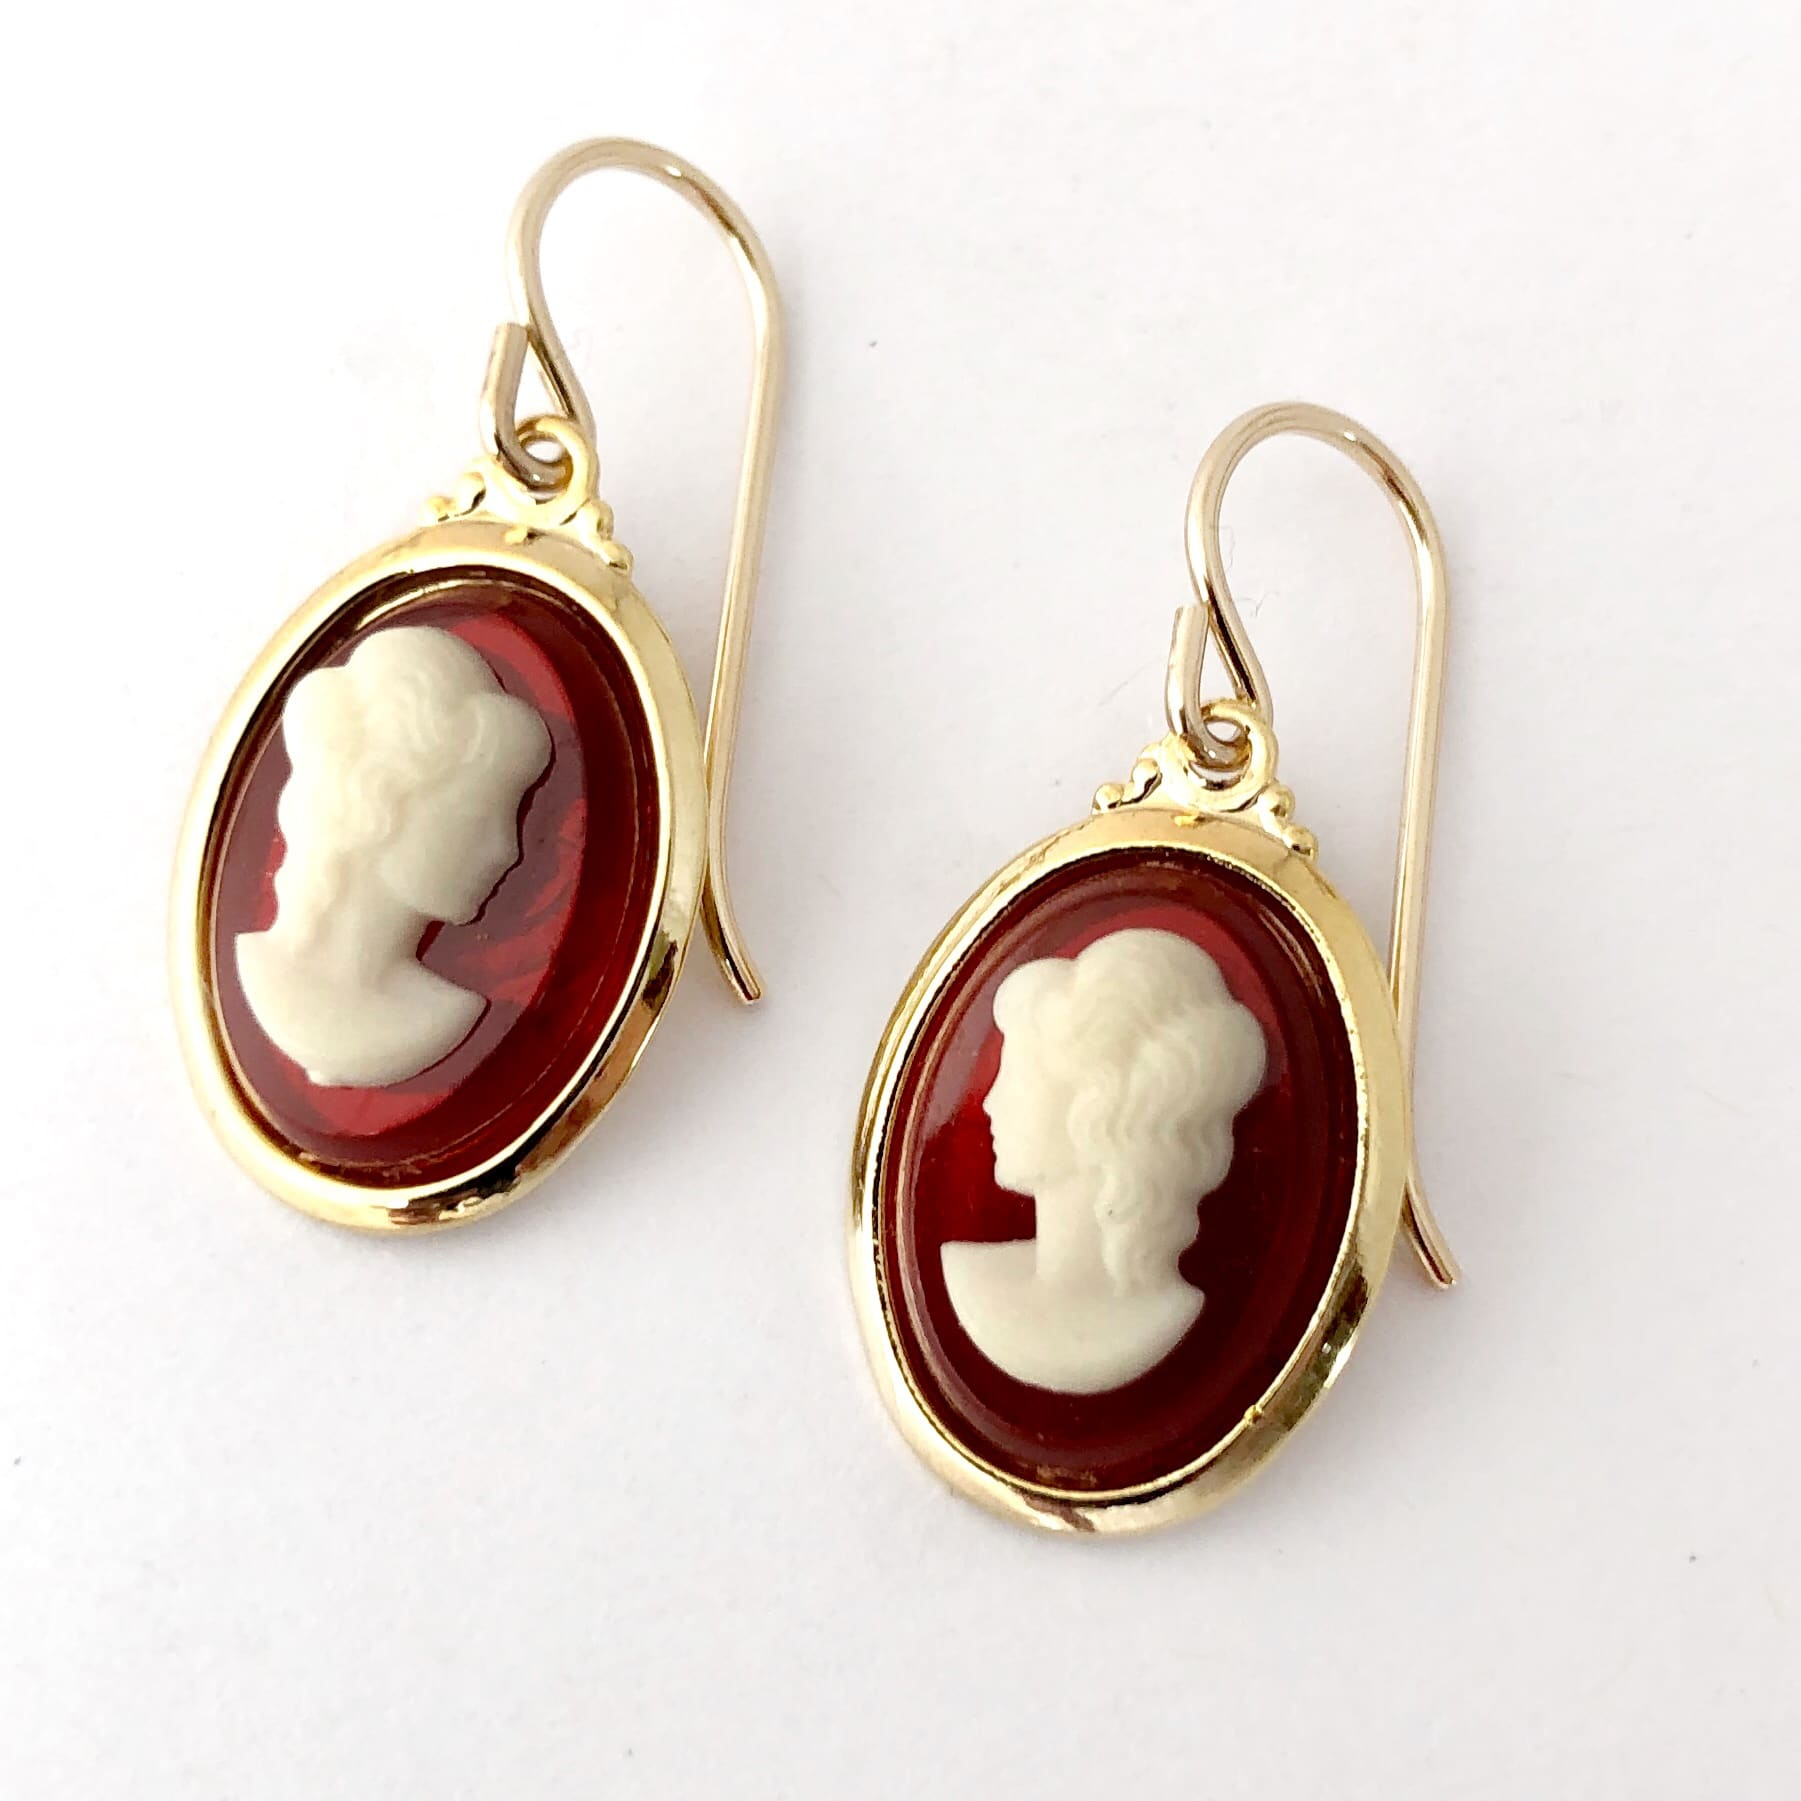 Vintage Cameo Earrings By My Vintage Obsession